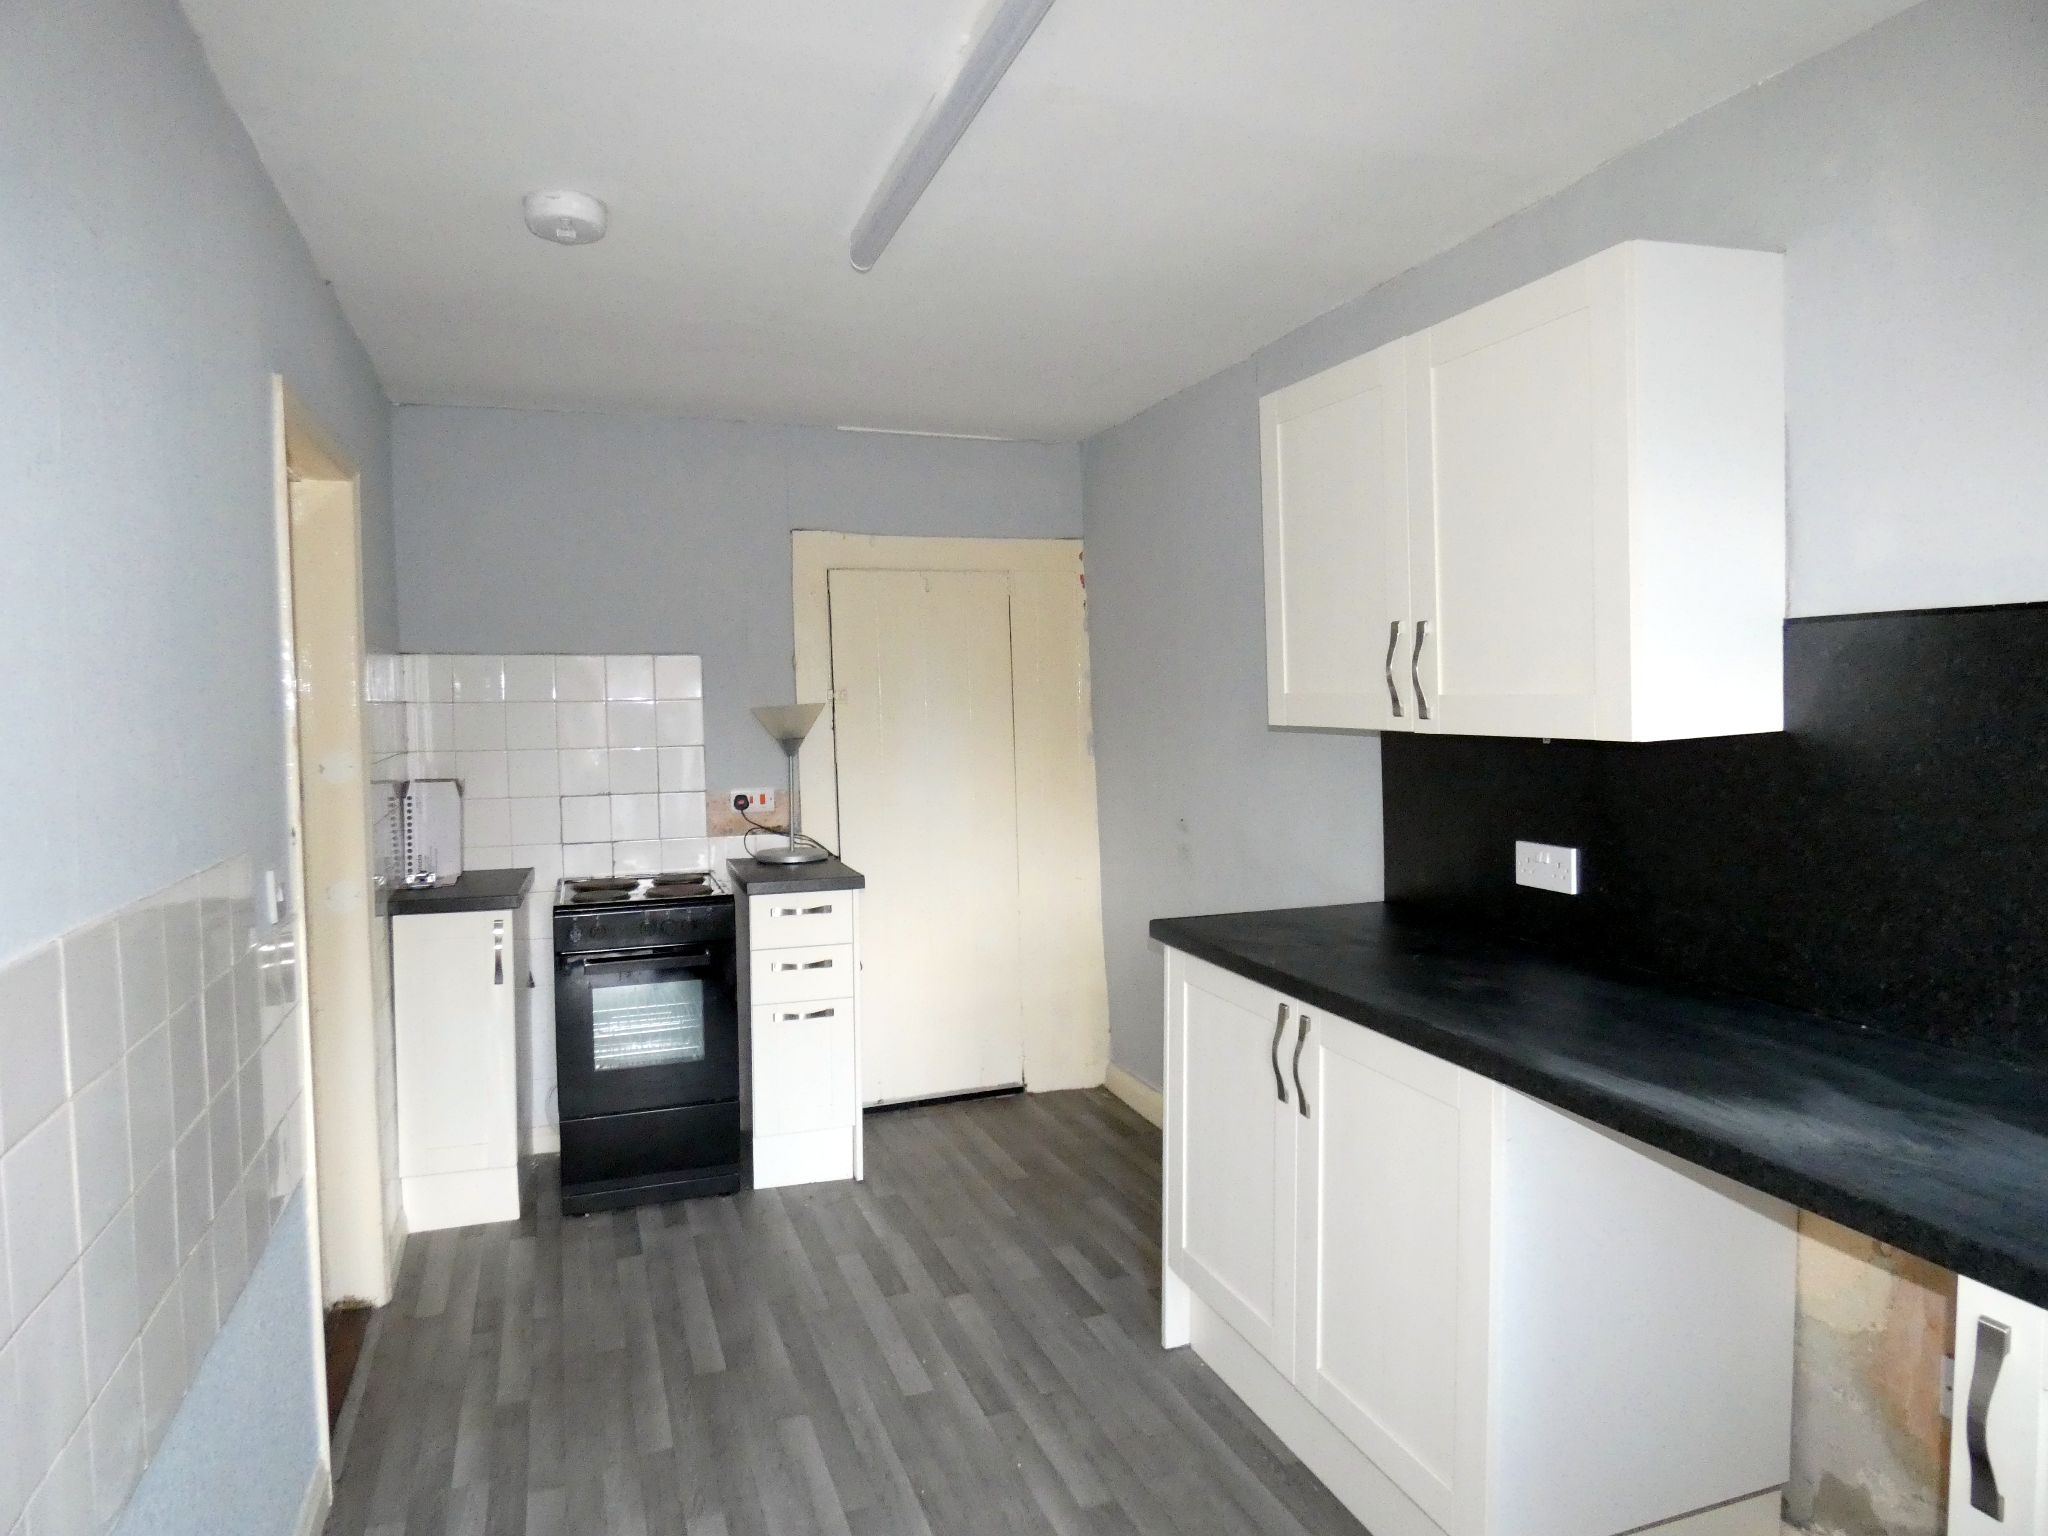 2 bedroom mid terraced house For Sale in Bishop Auckland - Kitchen.